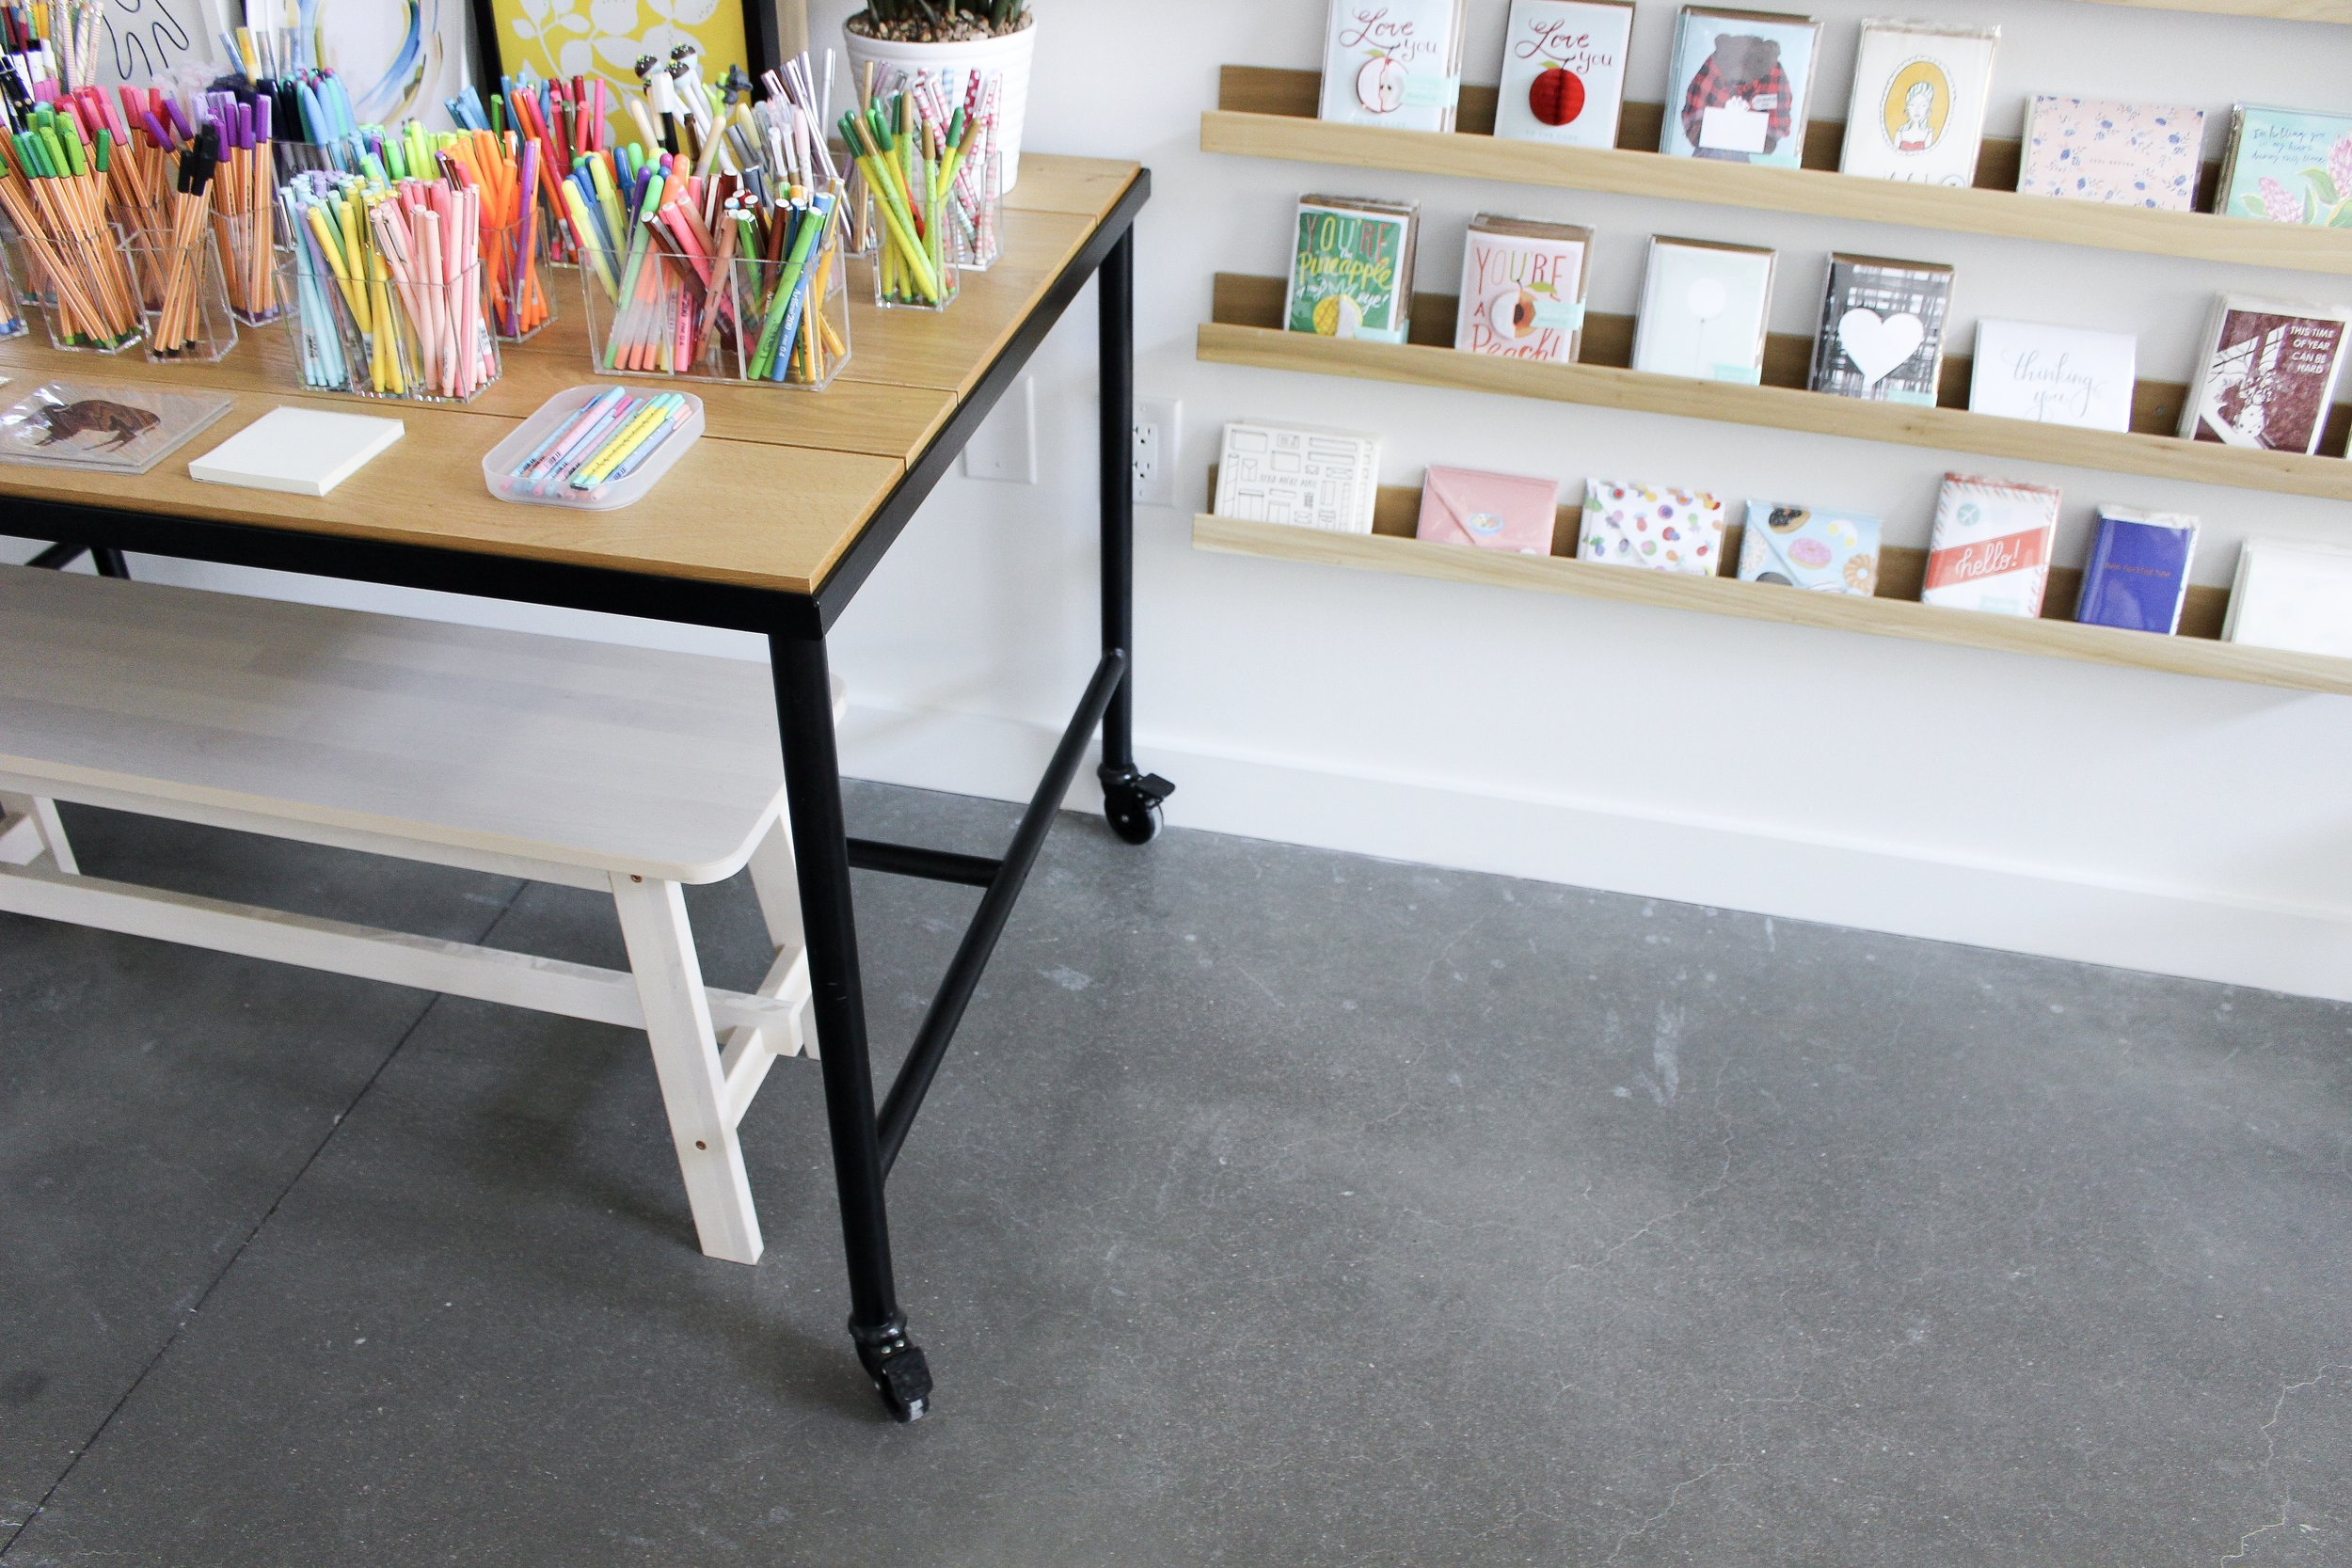 Paper + Craft Pantry Blog: A peek at some of our cards and pens.